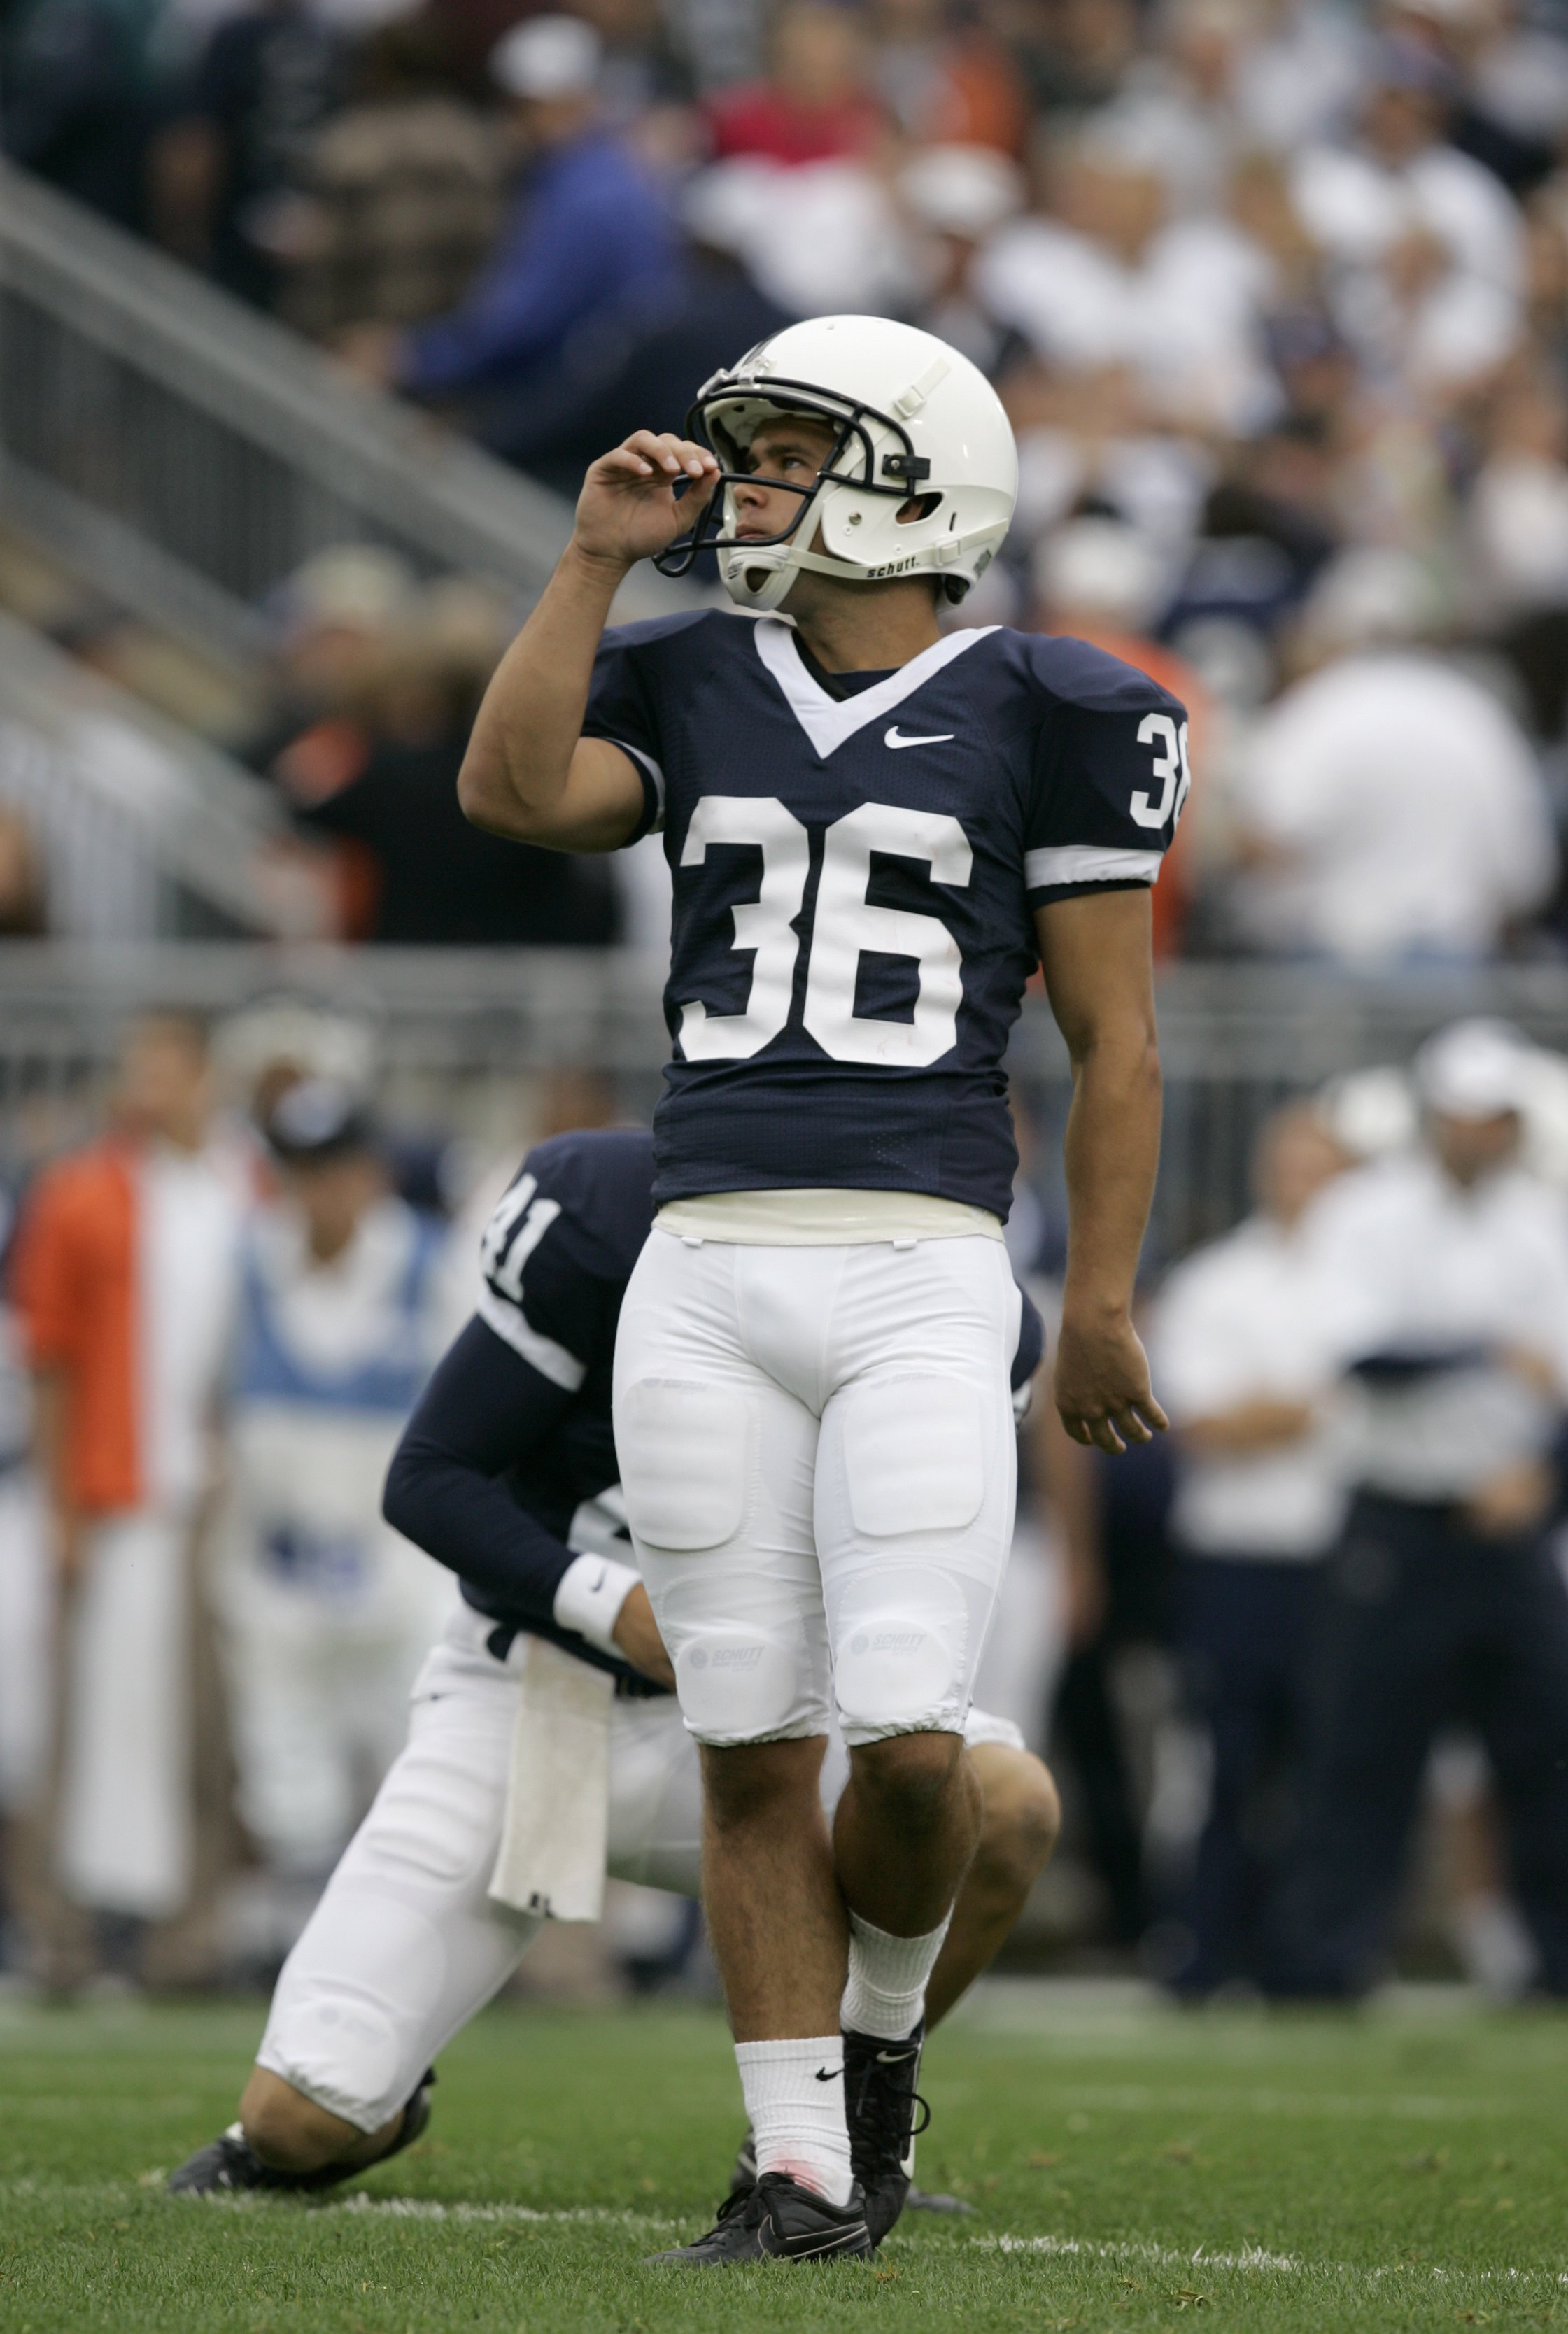 STATE COLLEGE, PA - SEPTEMBER 12: Place kicker Collin Wagner #36 of the Penn State Nittany Lions watches a point after touchdown against the Syracuse Orangemen at Beaver Stadium  September 12, 2009 in State College, Pennsylvania. (Photo by Chris Gardner/G